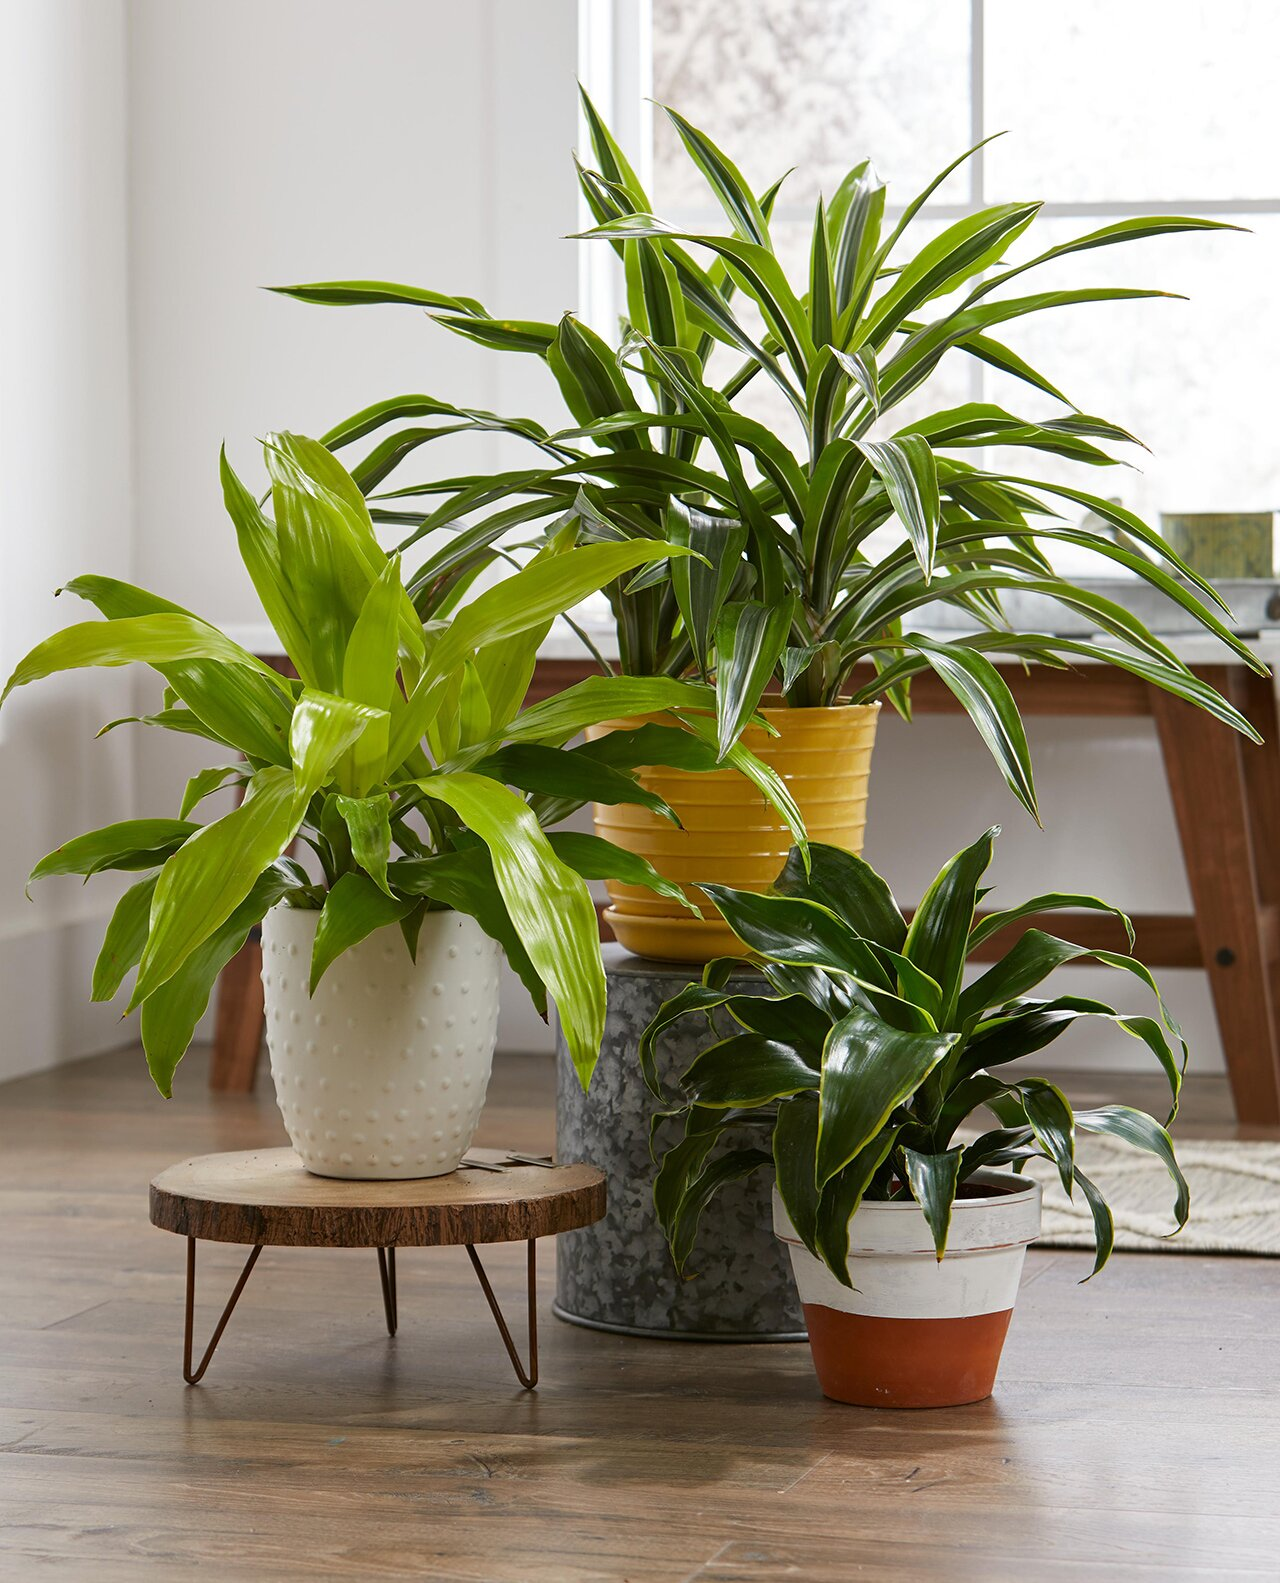 Local Plants For Your Home Garden